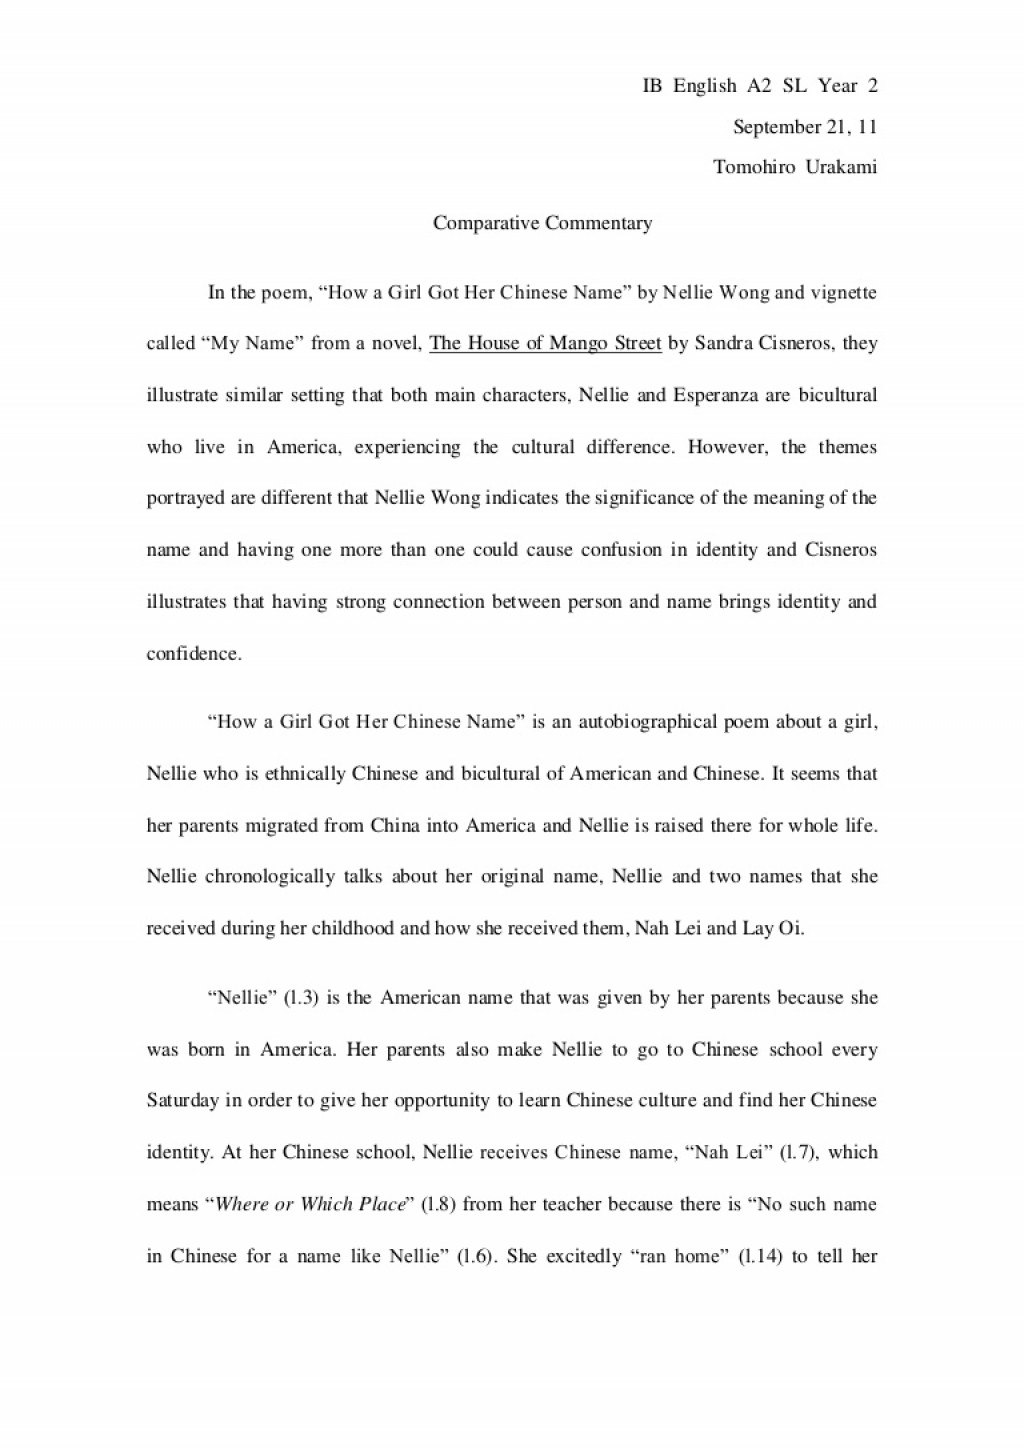 013 Essay Example What Is An American Stupendous Thesis Your Dream Ideas Large